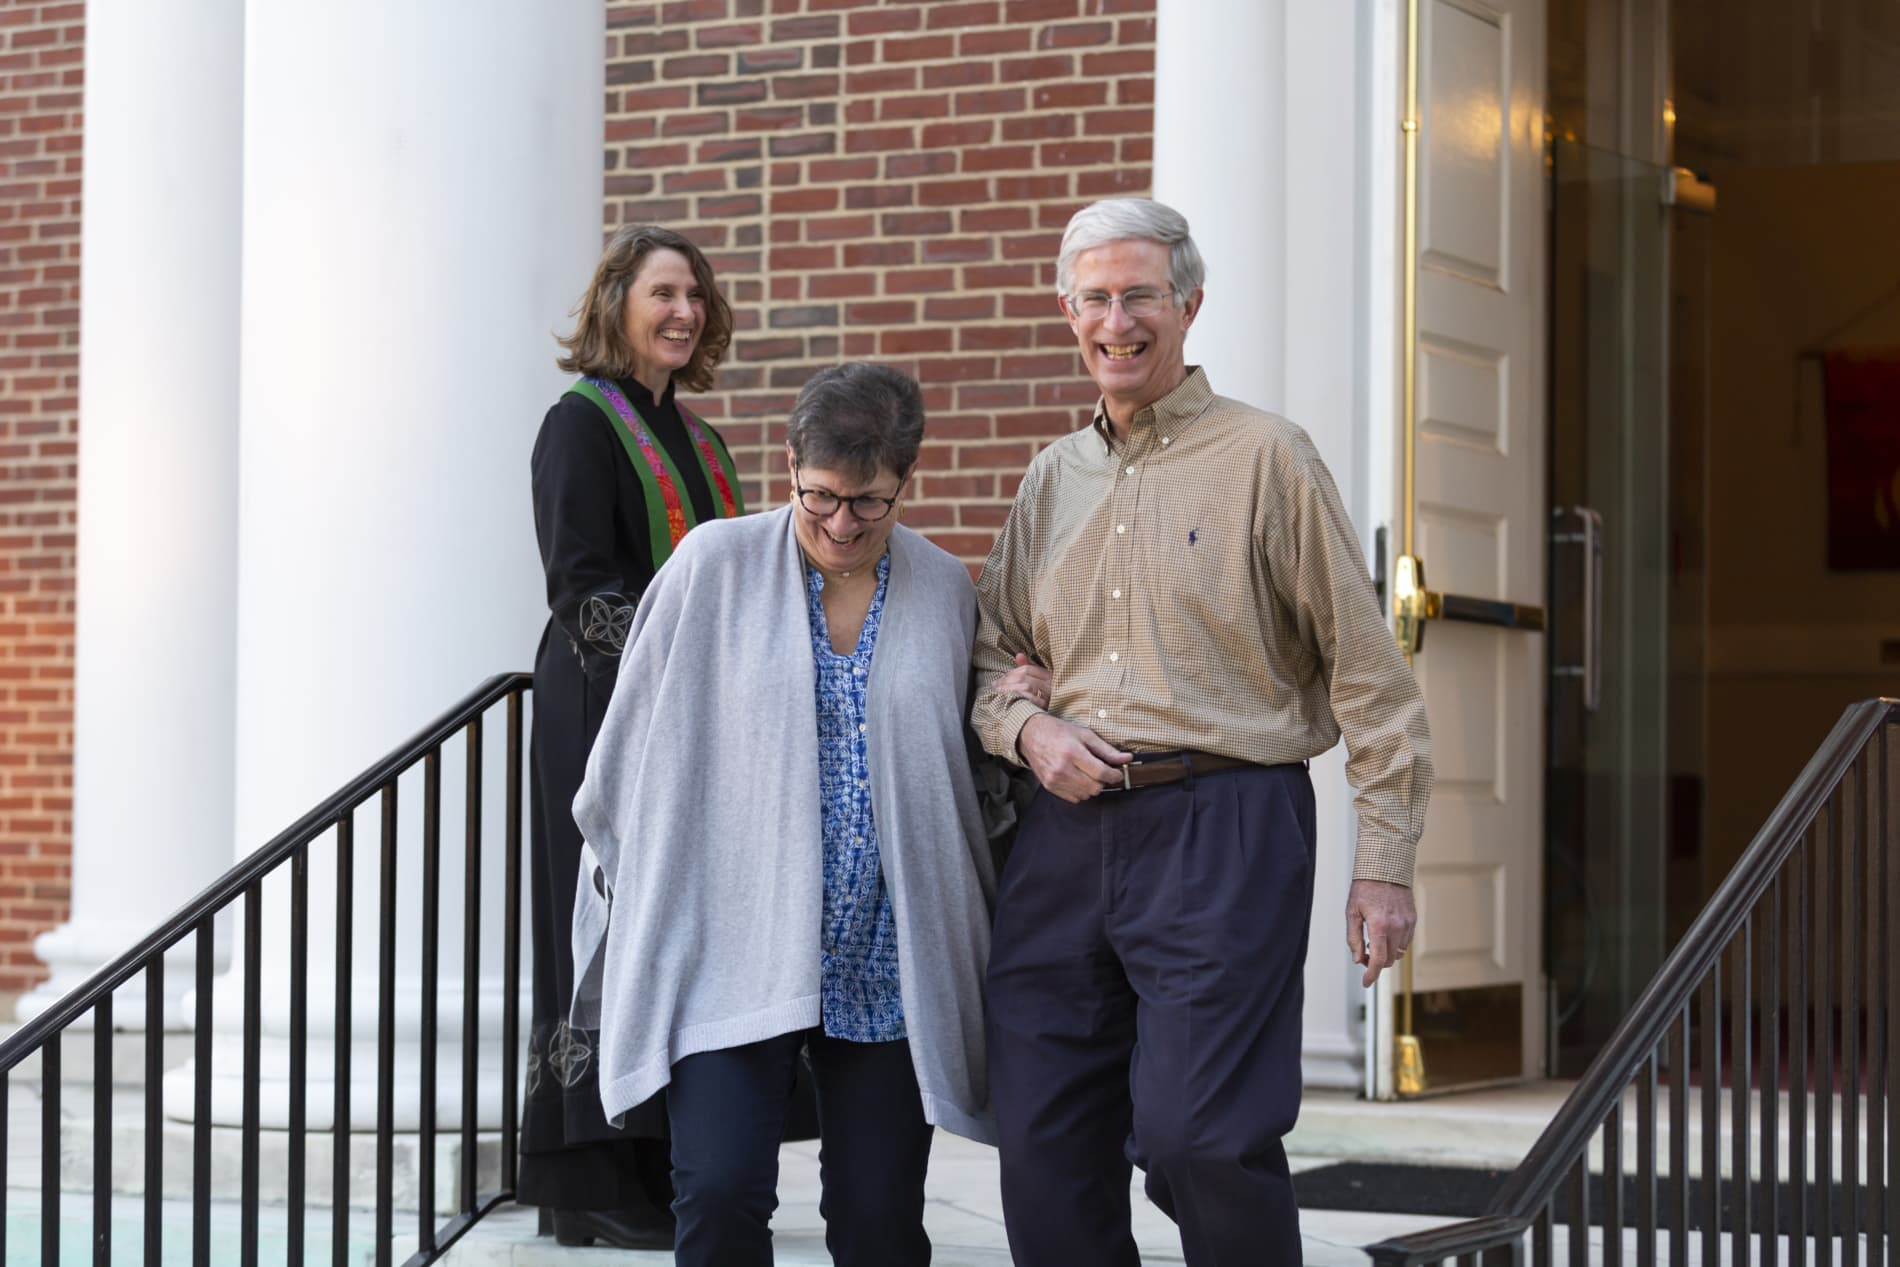 A smiling couple descends the stairs of the church while a pastor looks on